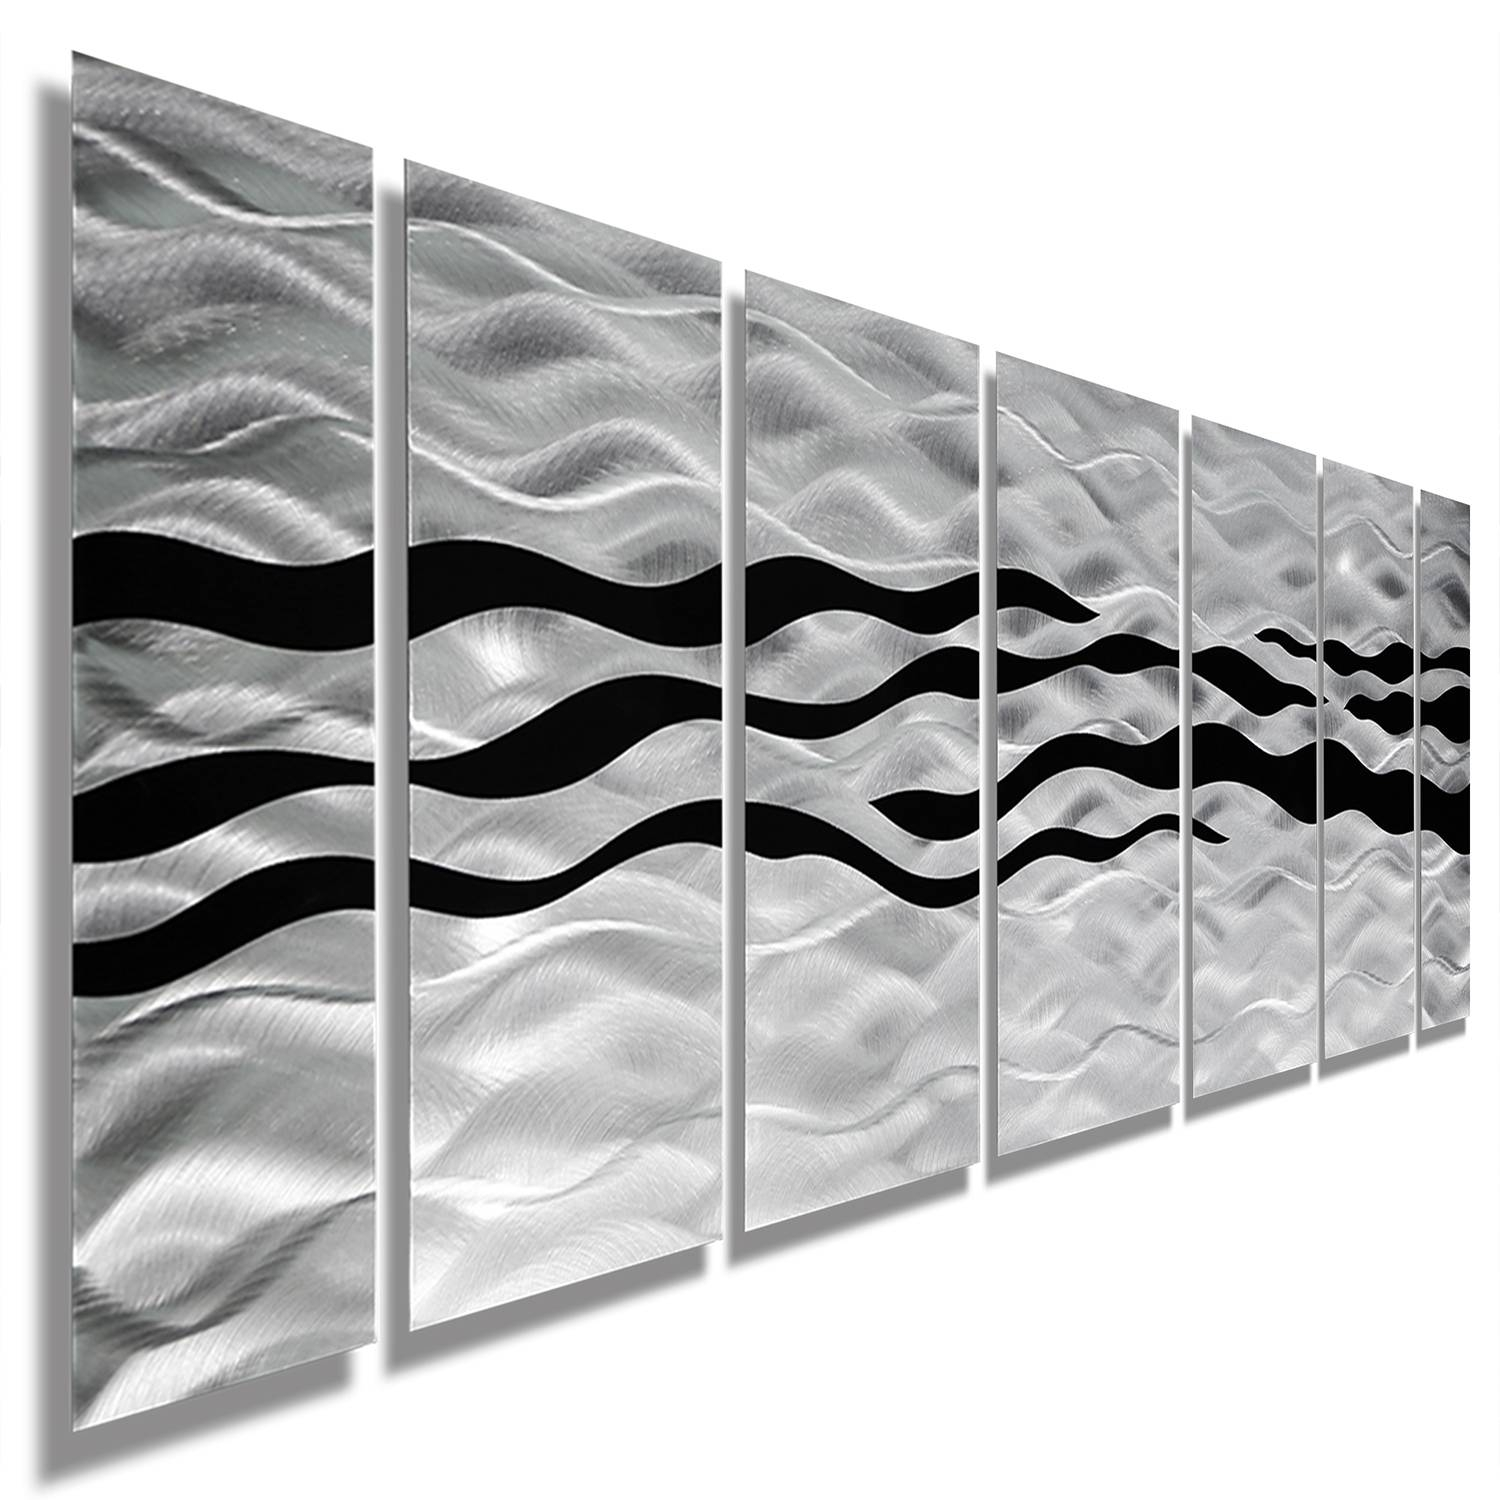 Wild Ways – Silver And Black Modern Metallic Wall Hanging Pertaining To Current Black And Silver Metal Wall Art (View 10 of 20)